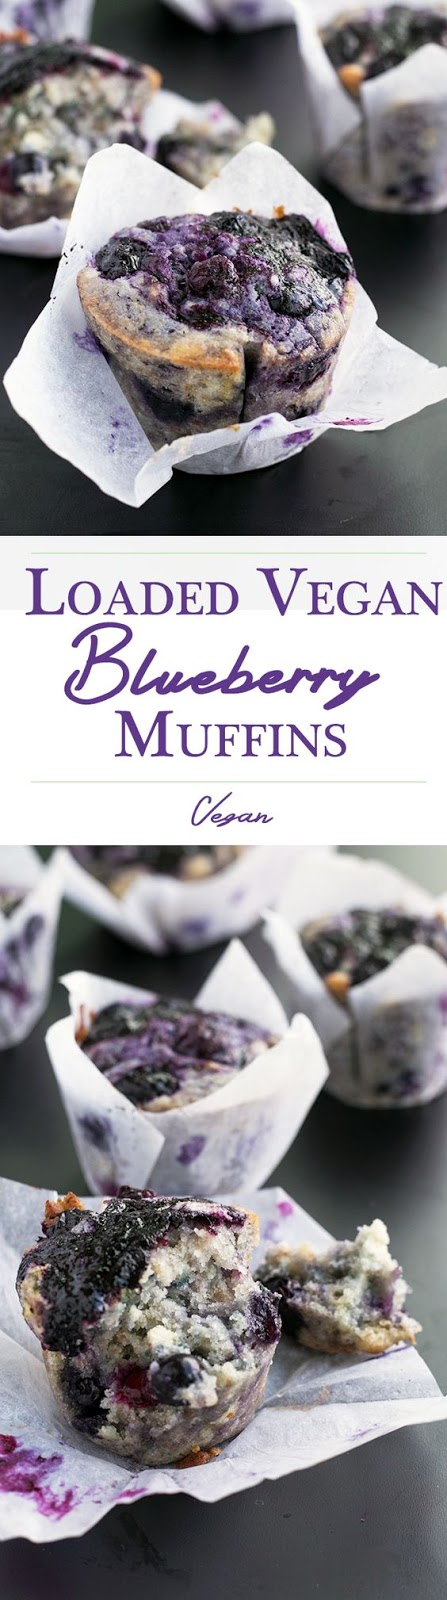 LOADED VEGAN BLUEBERRY MUFFINS